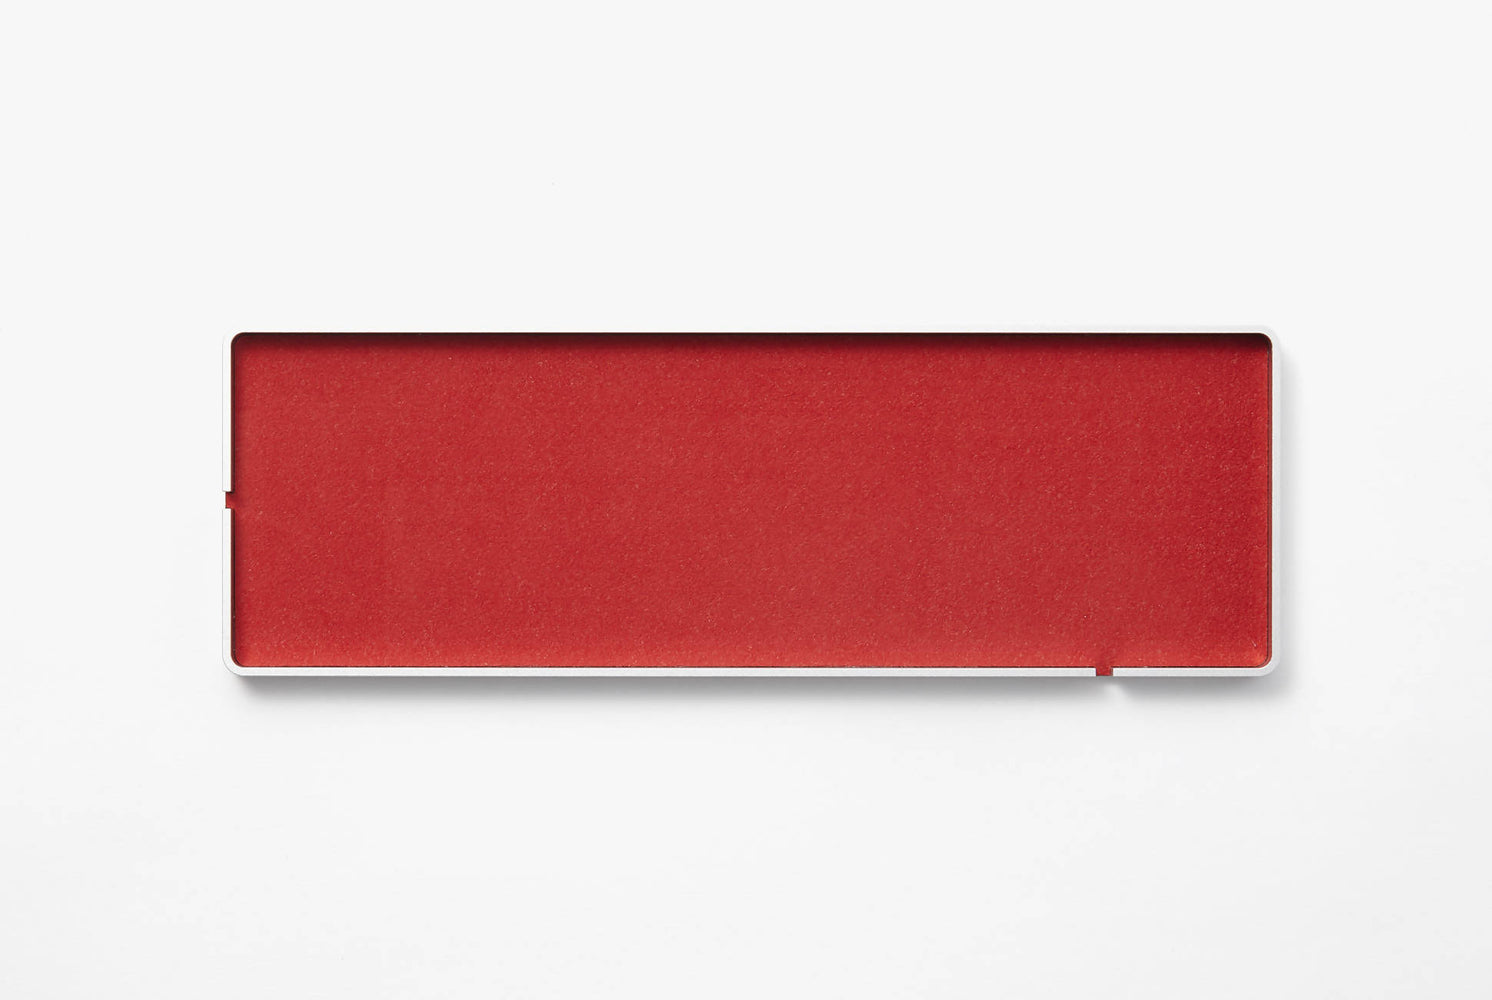 Intension Design 4x12 Tray - Red, top-down shot of tray on a white background